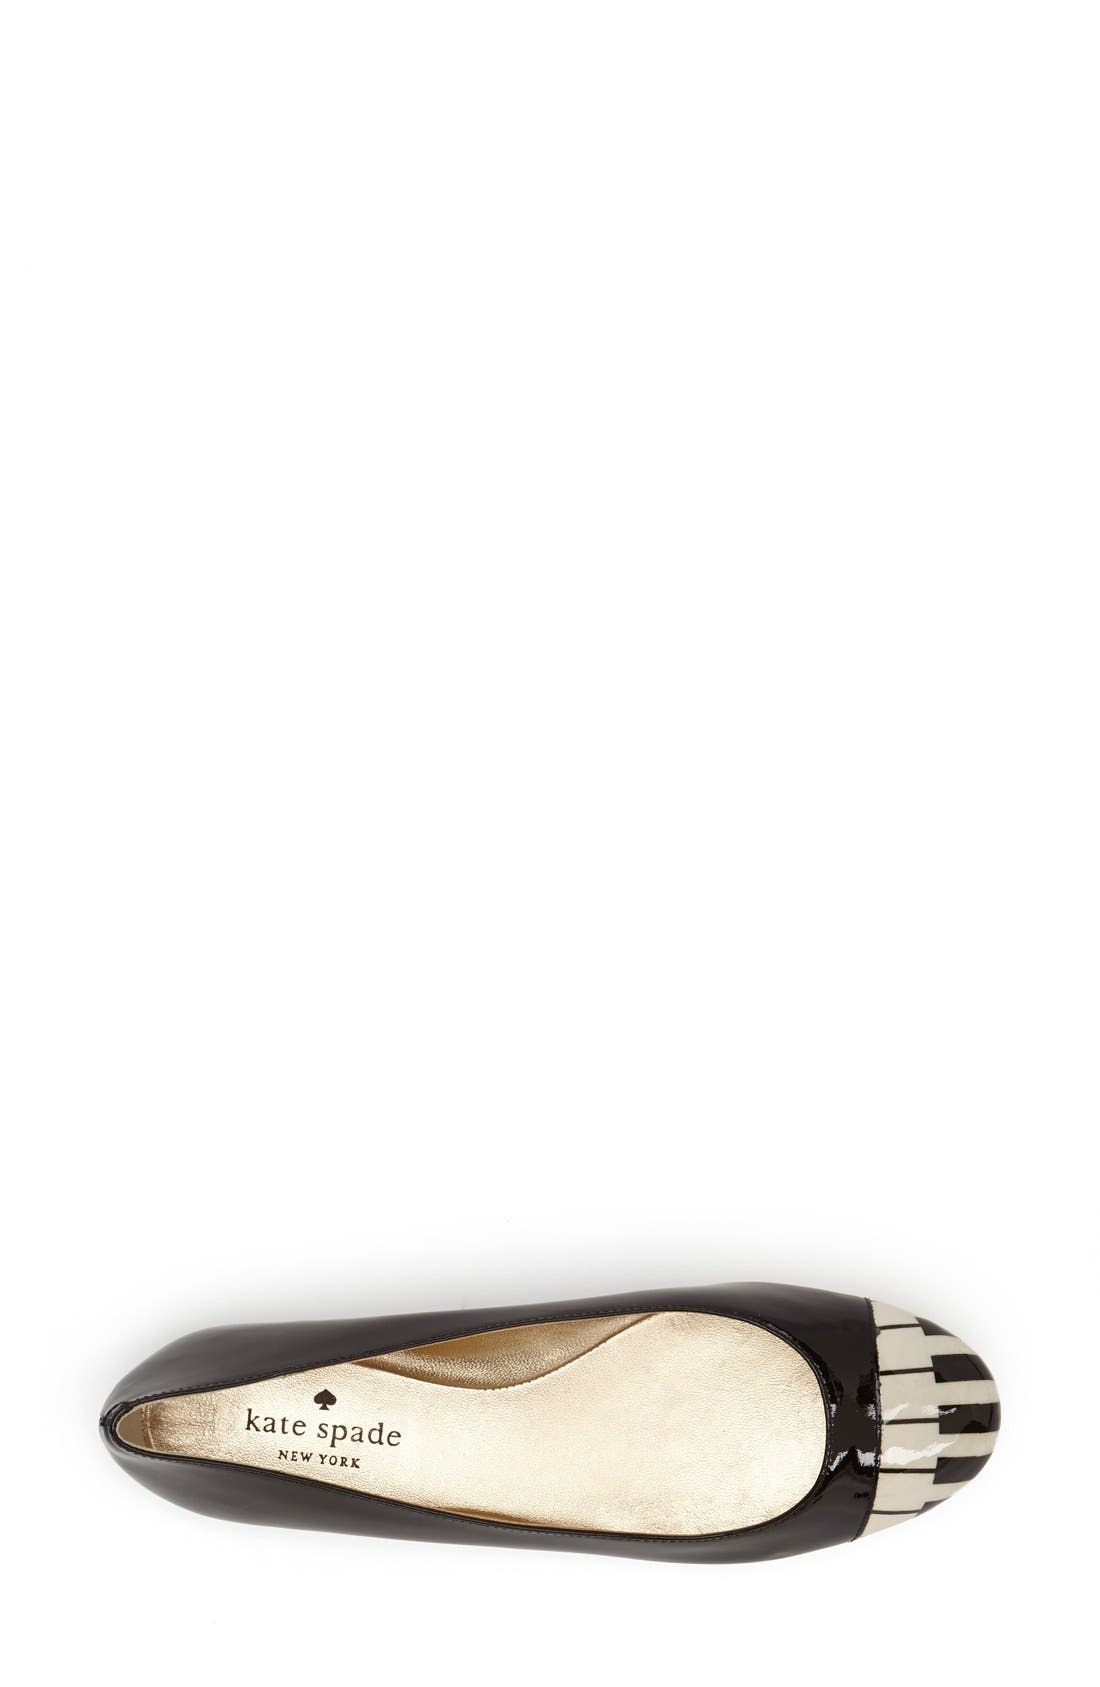 Alternate Image 3  - kate spade new york 'jazz' flat (Women)